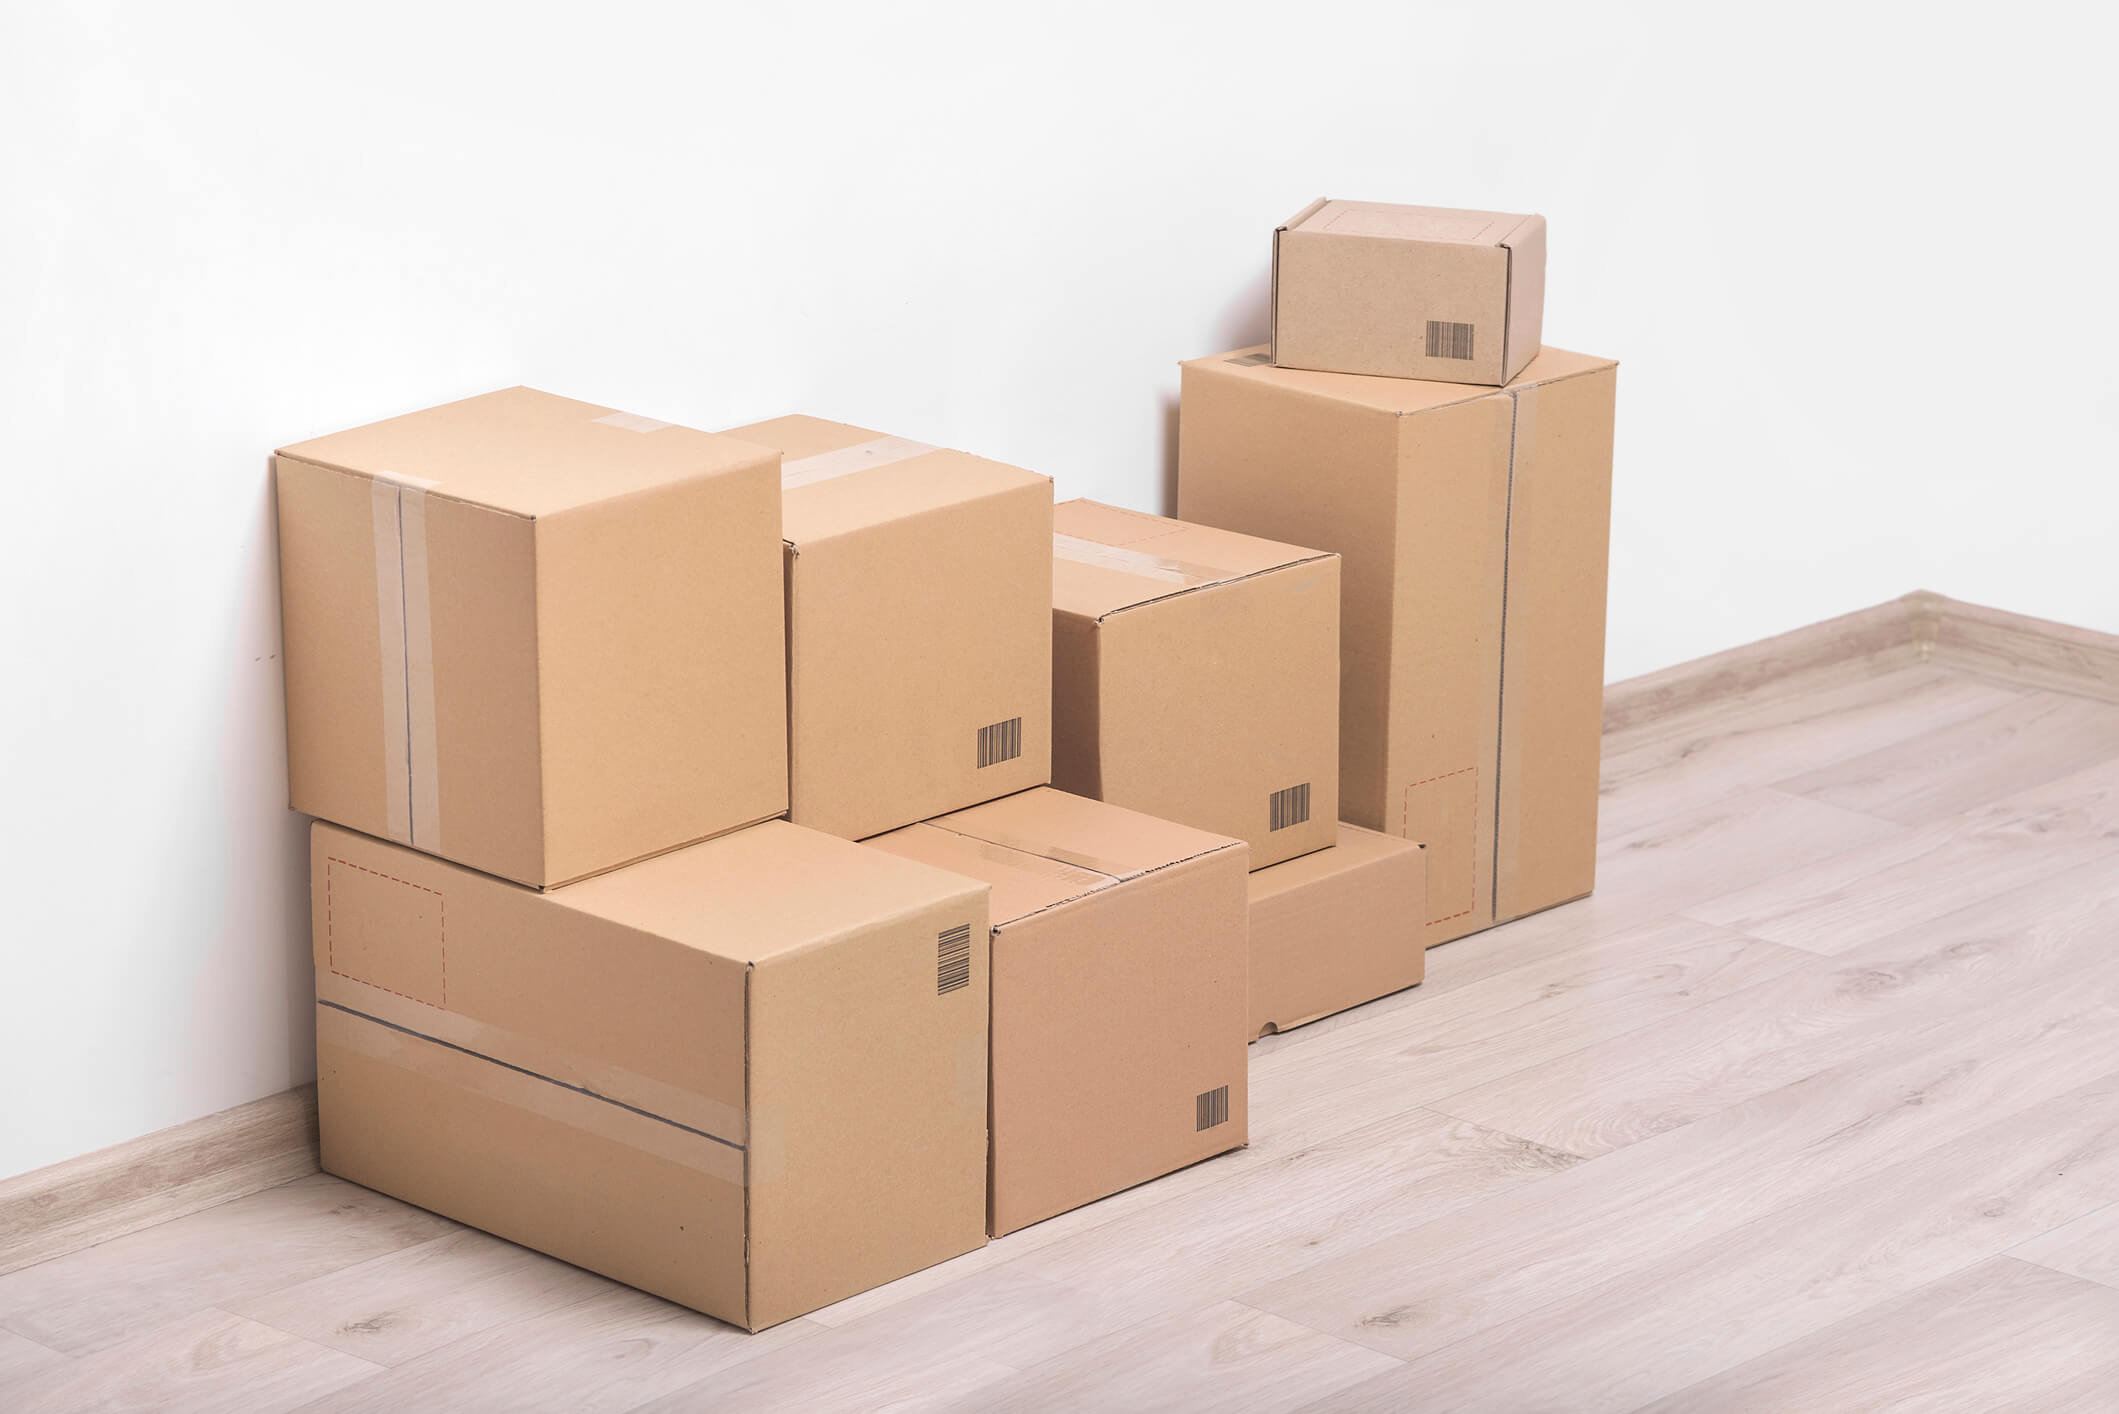 packed cardboard boxes sat in an empty room